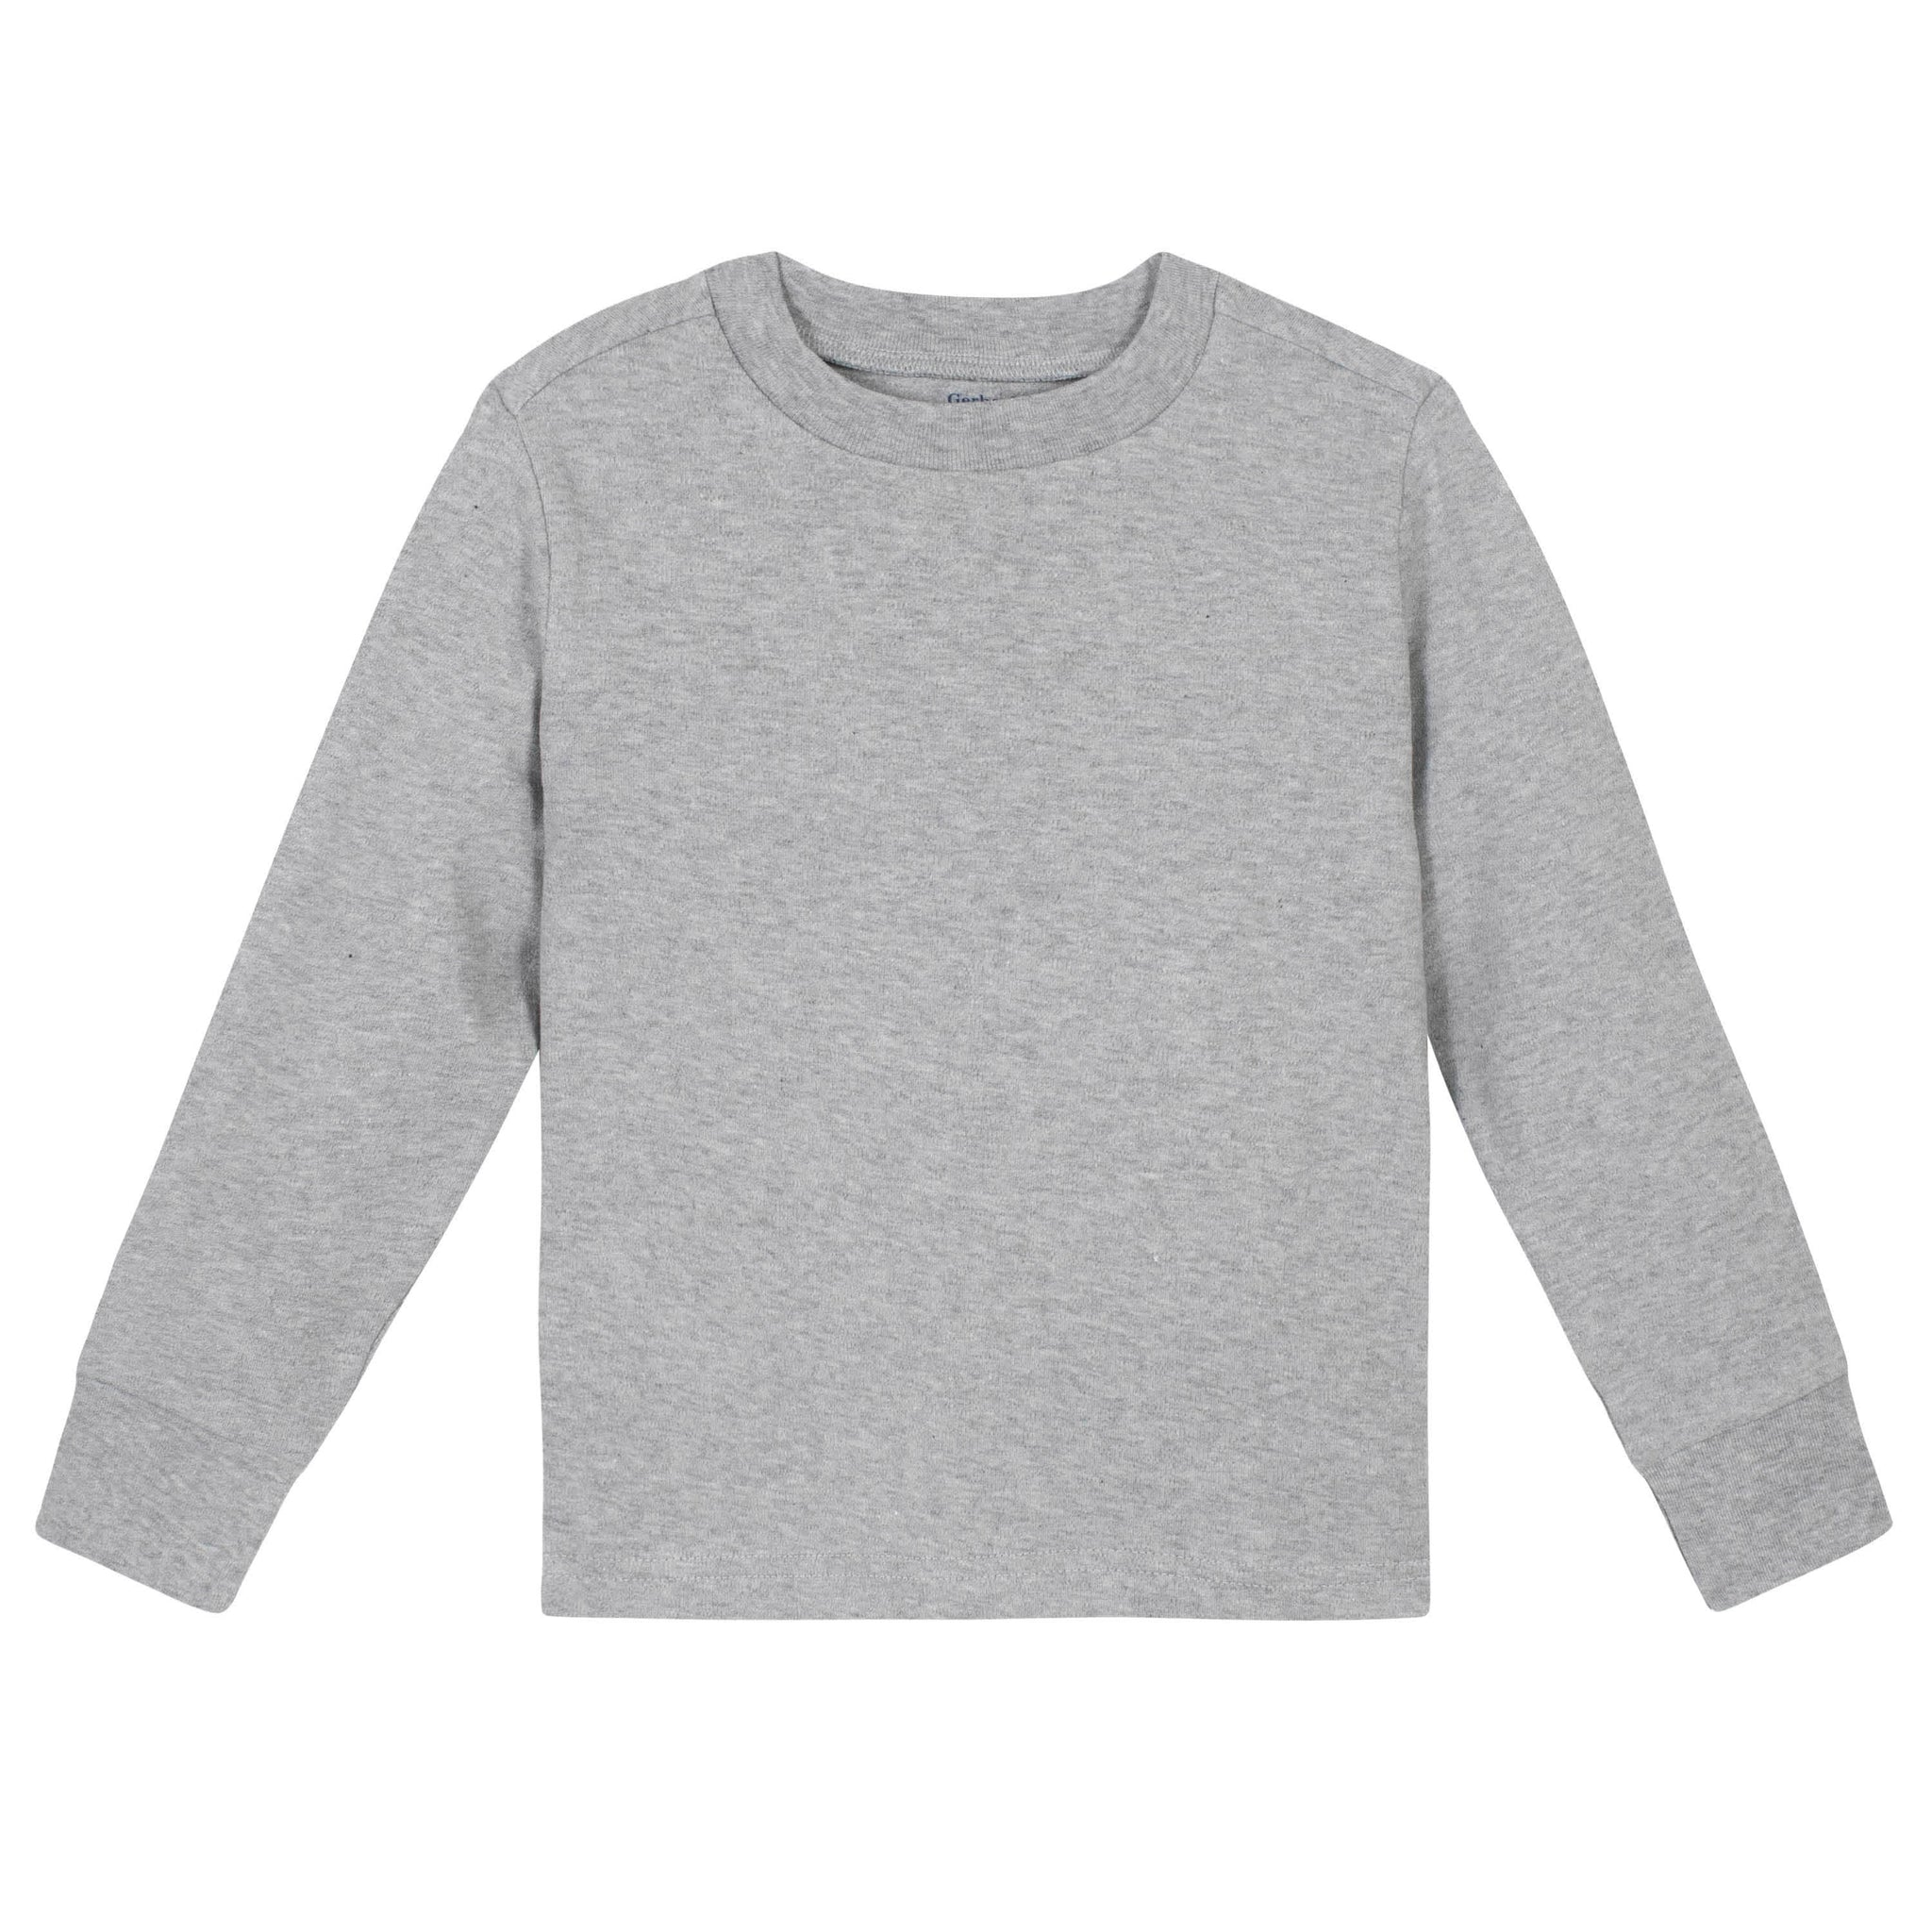 Gerber® Premium Light Gray Long Sleeve Tee Shirt - 10 Colors Available